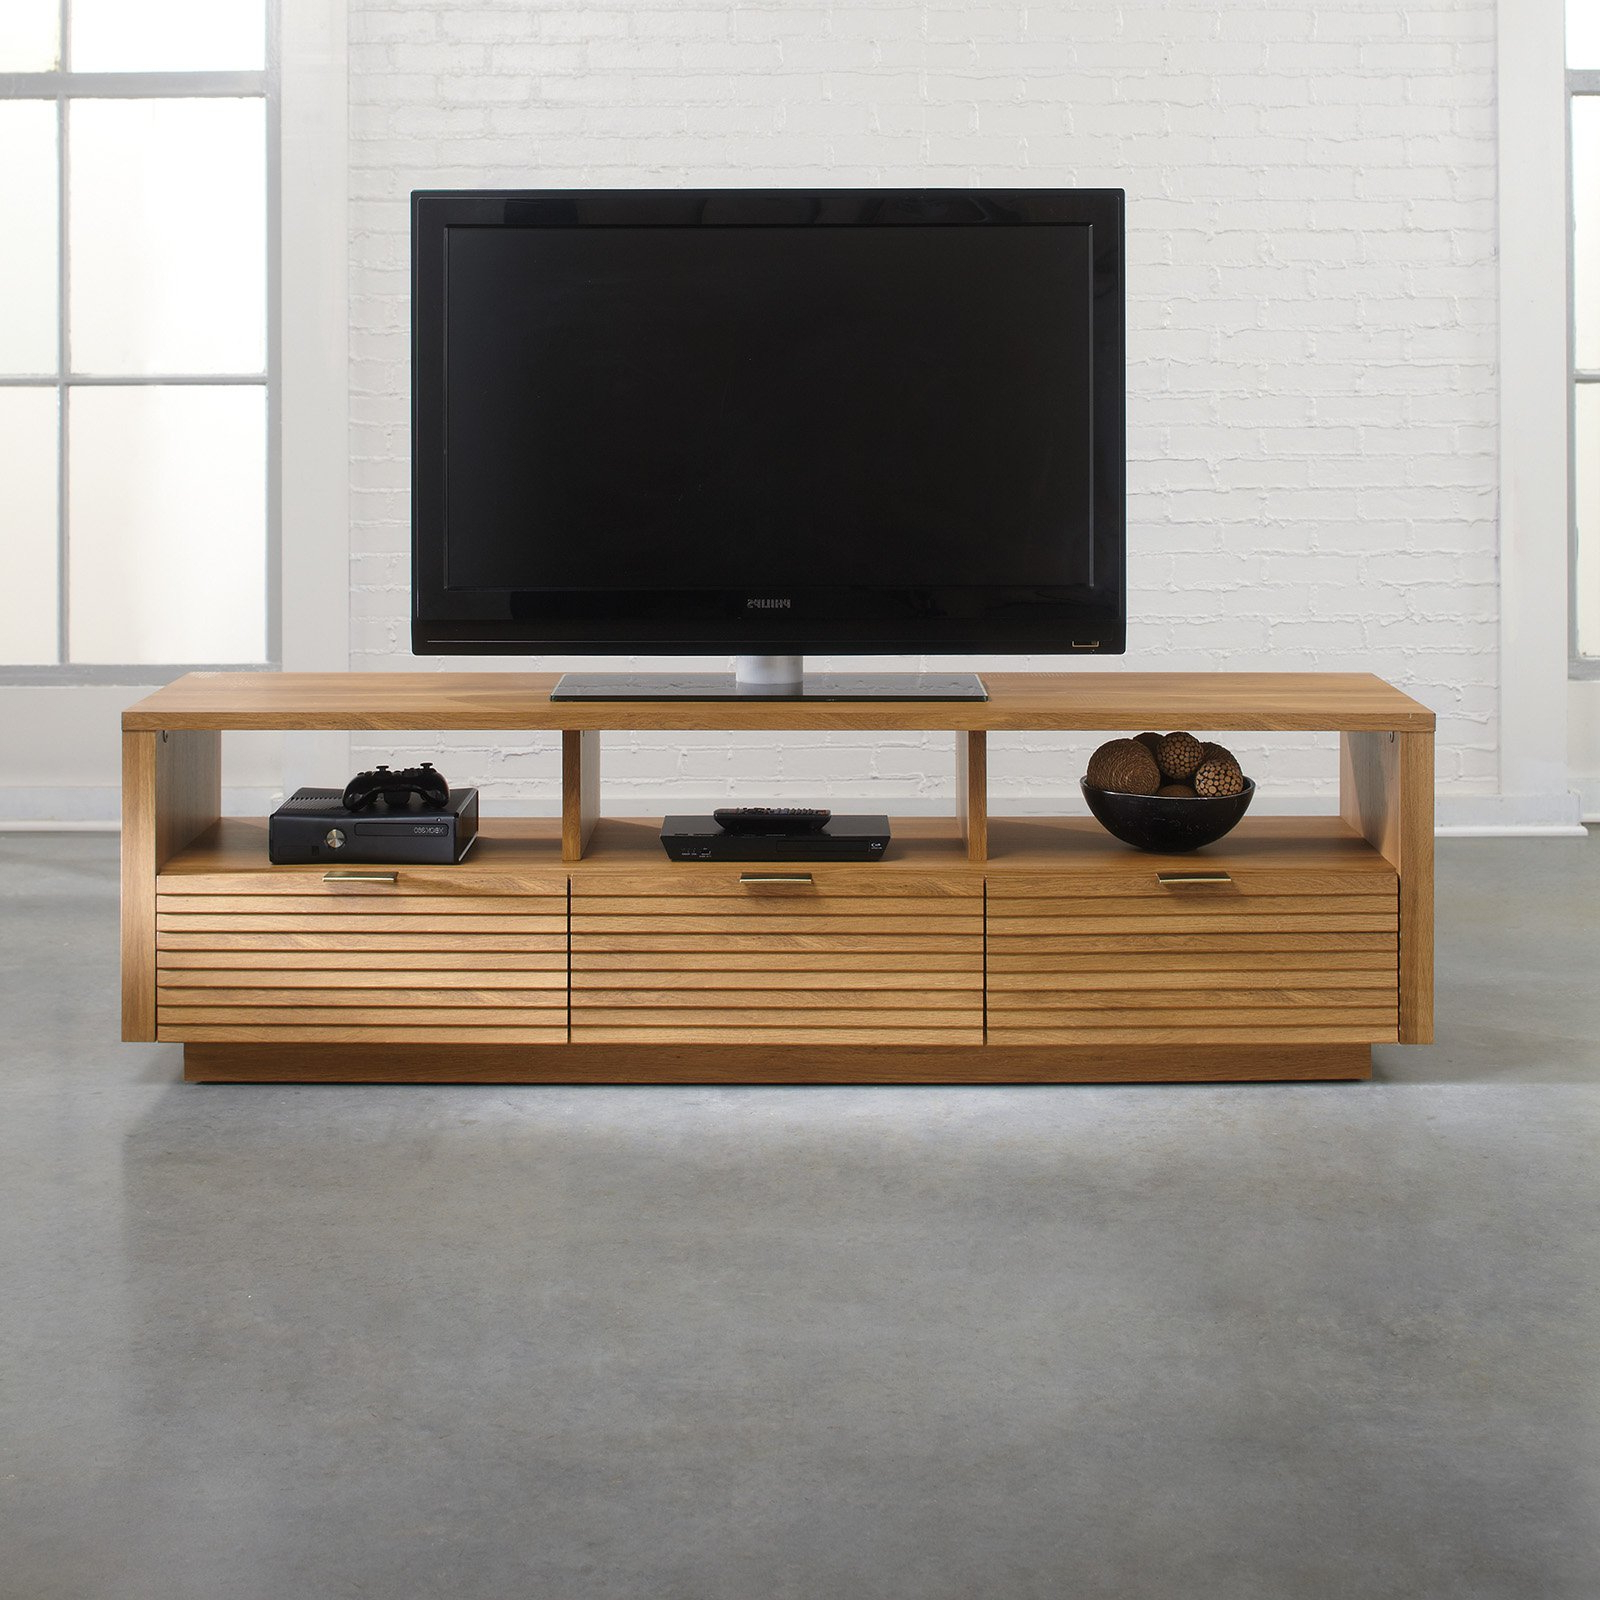 Sauder Soft Modern Entertainment Credenza – Pale Oak – Walmart For Most Recent Modern Low Profile Tv Stands (Gallery 6 of 20)